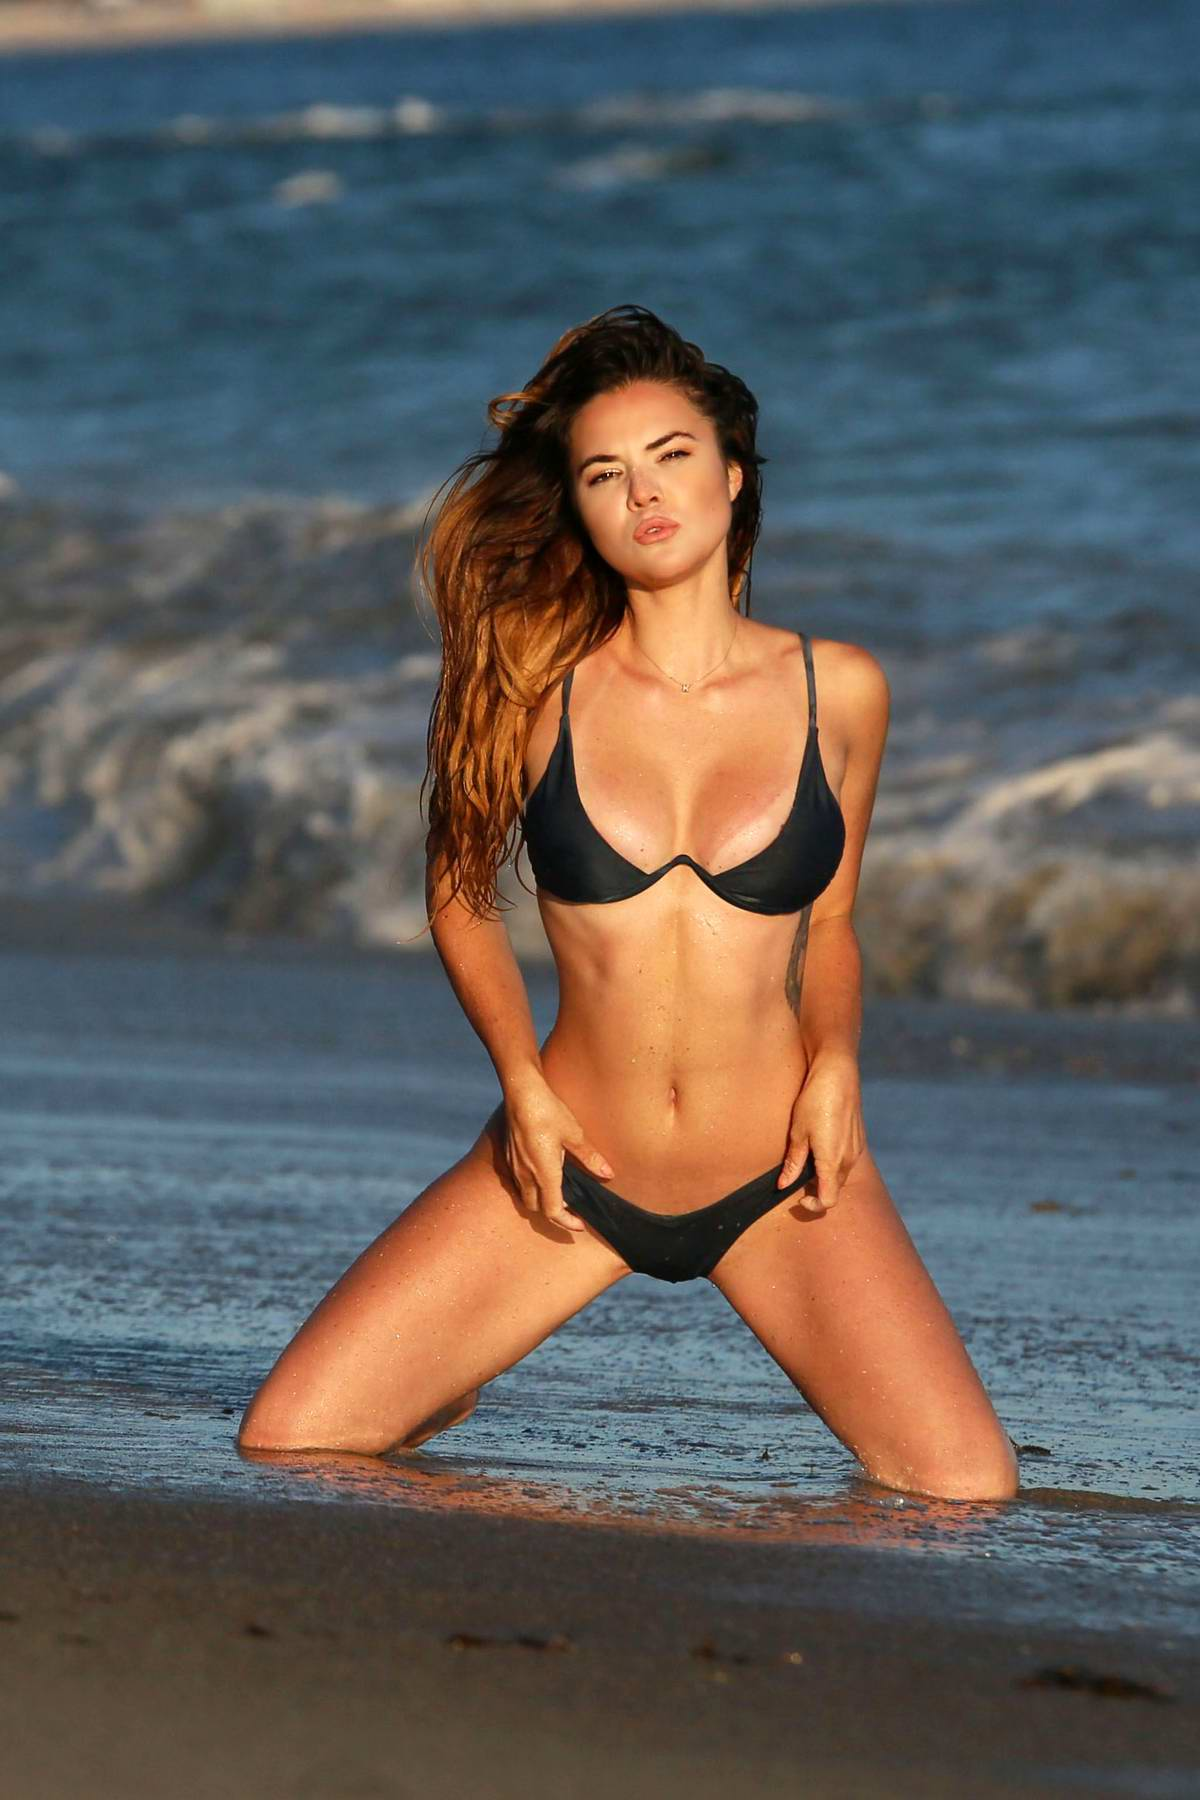 Kaili Thorne poses in a bikini during a beach photoshoot for 138 Water in Santa Monica, California